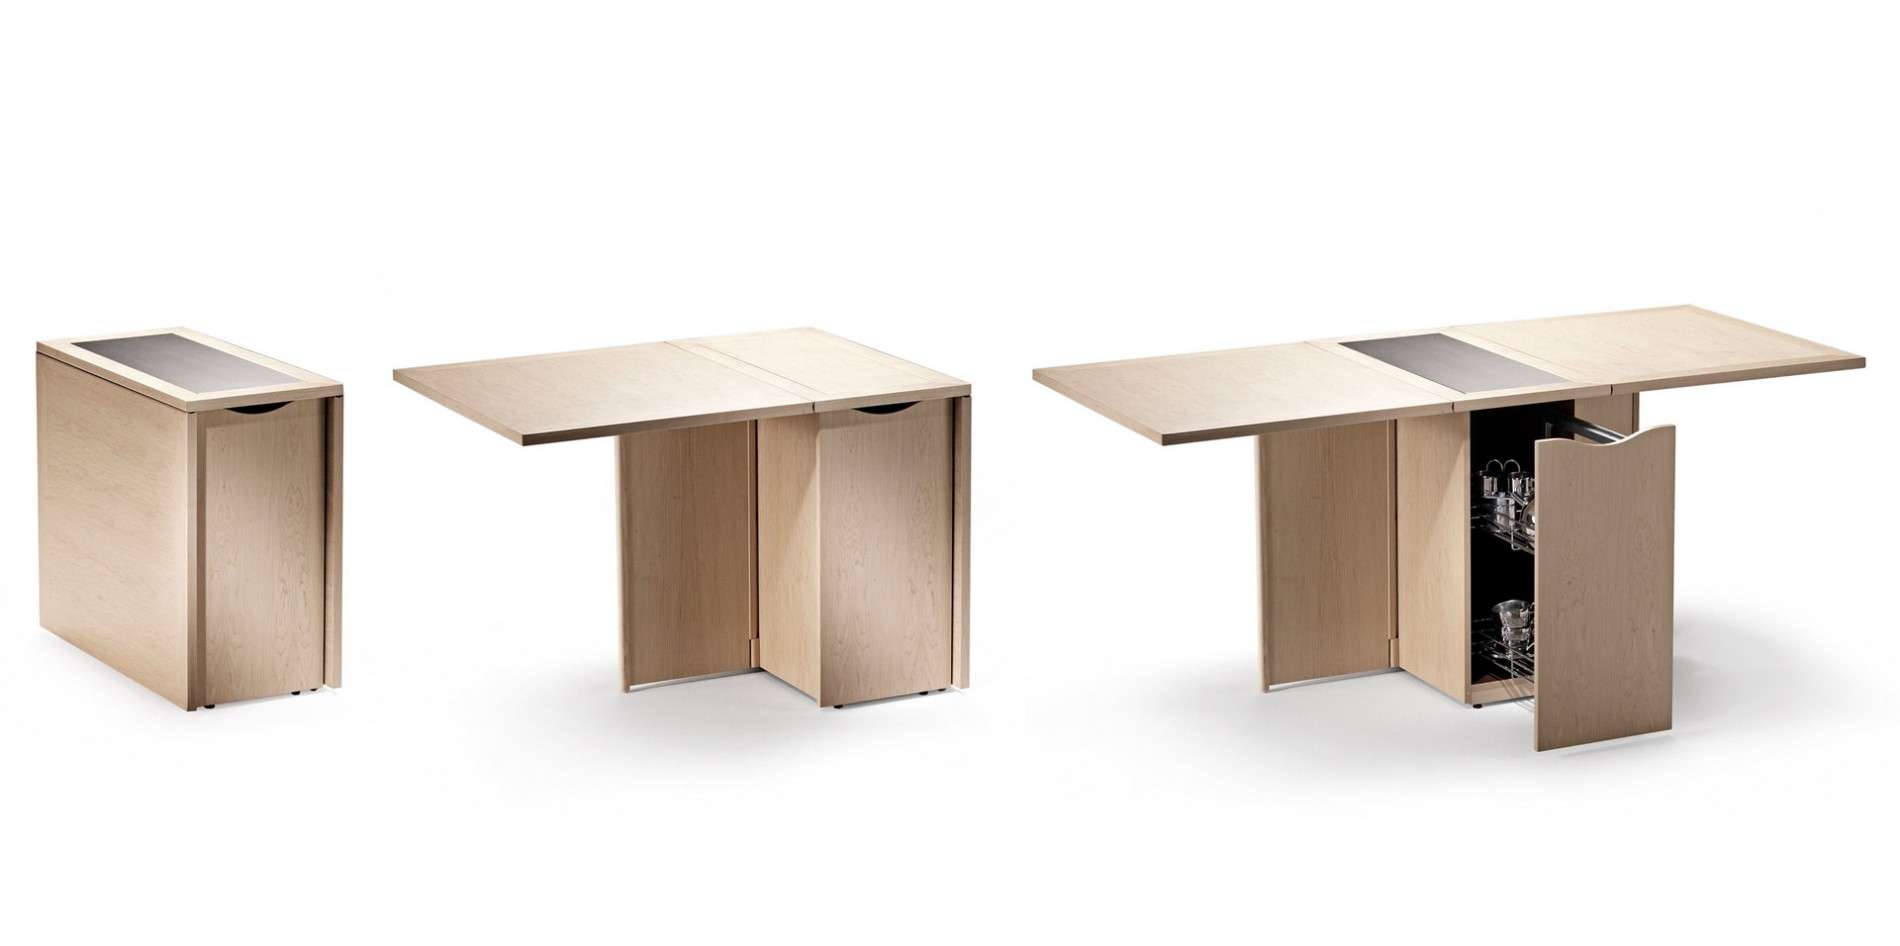 A Full Sized Table Can Collapse Into Mini Drawer For Your Dishes